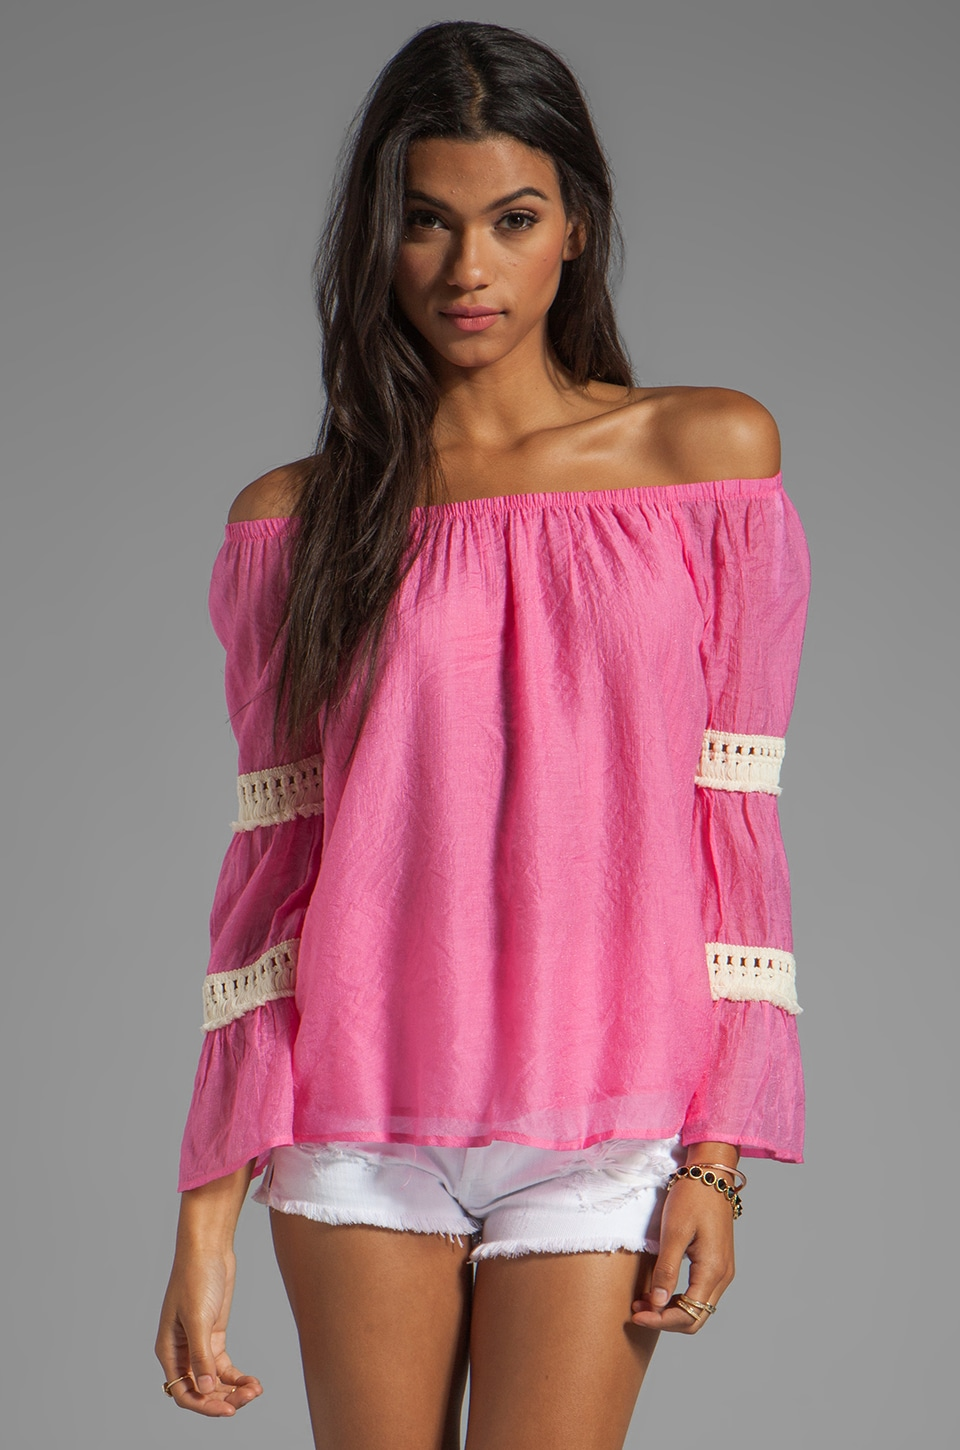 VAVA by Joy Han Lillian Top in Pink